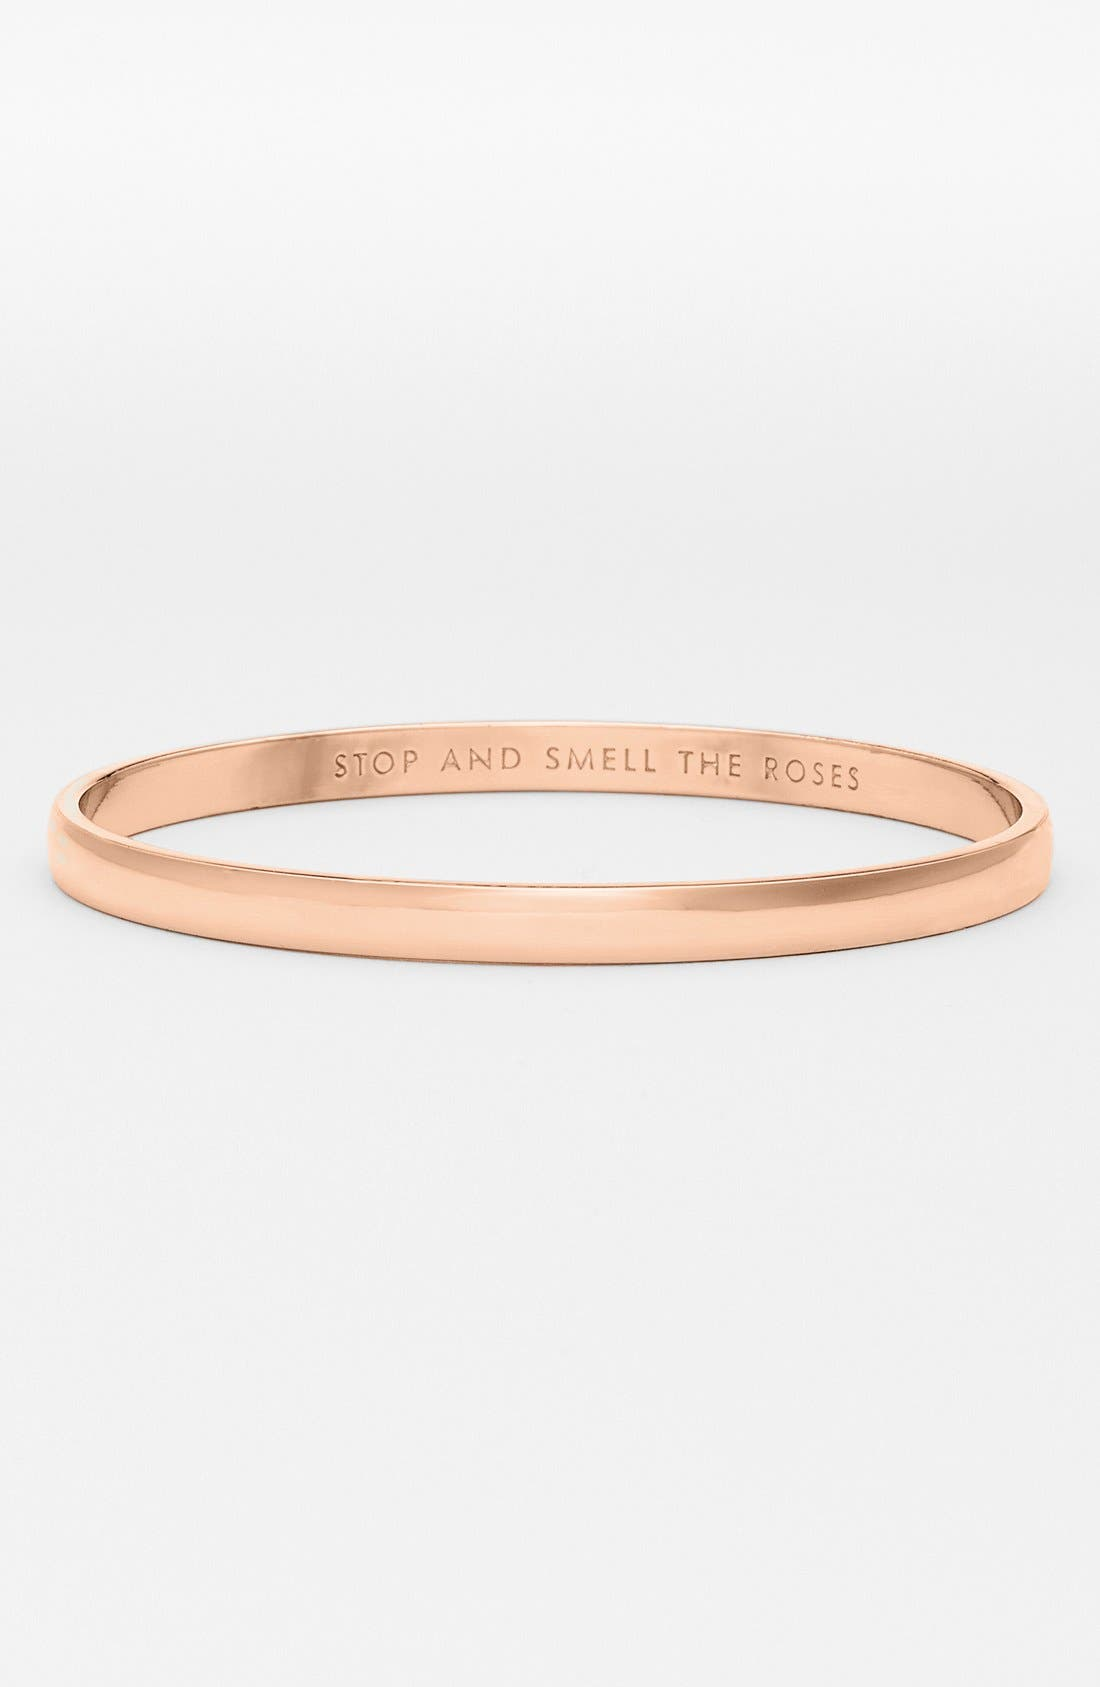 KATE SPADE NEW YORK idiom - stop and smell the roses bangle